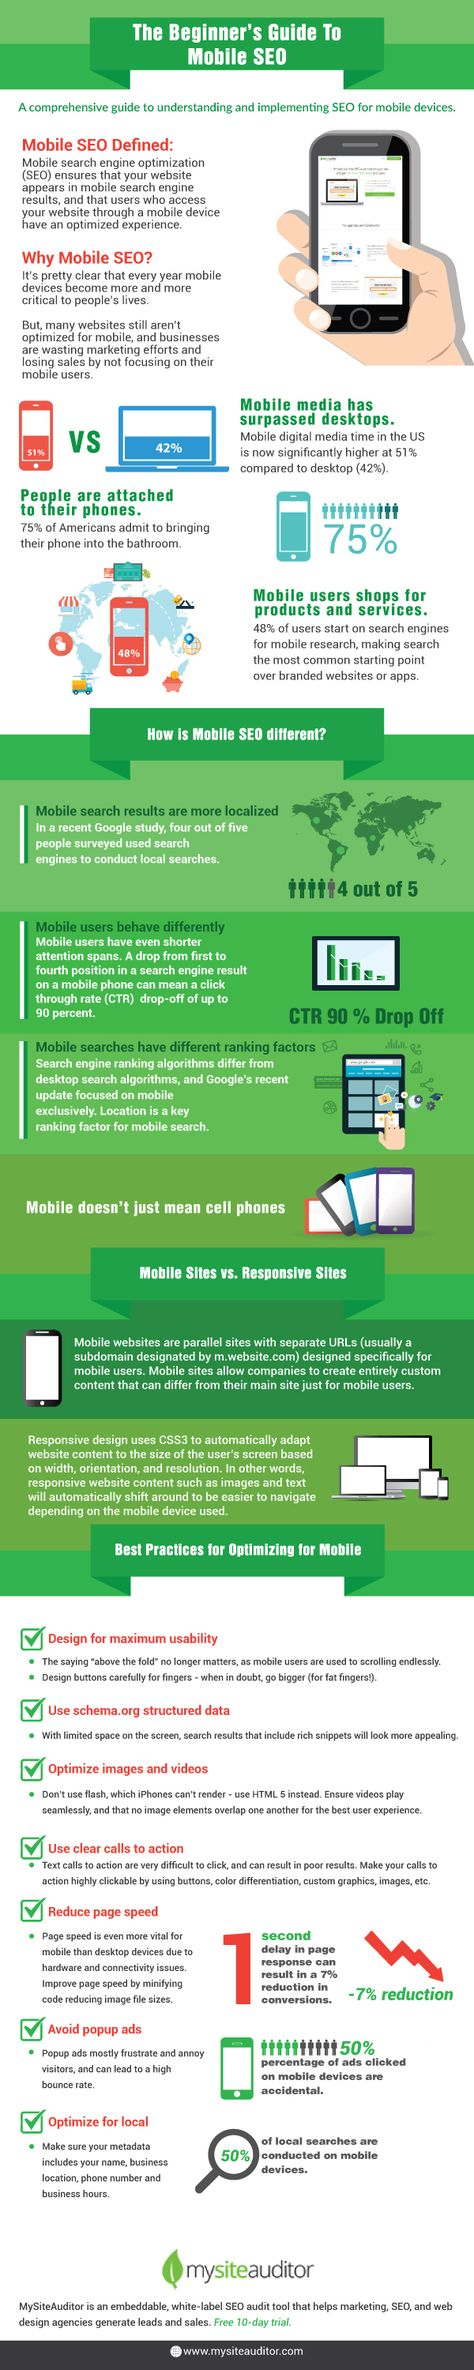 The Beginner's Guide to Mobile SEO